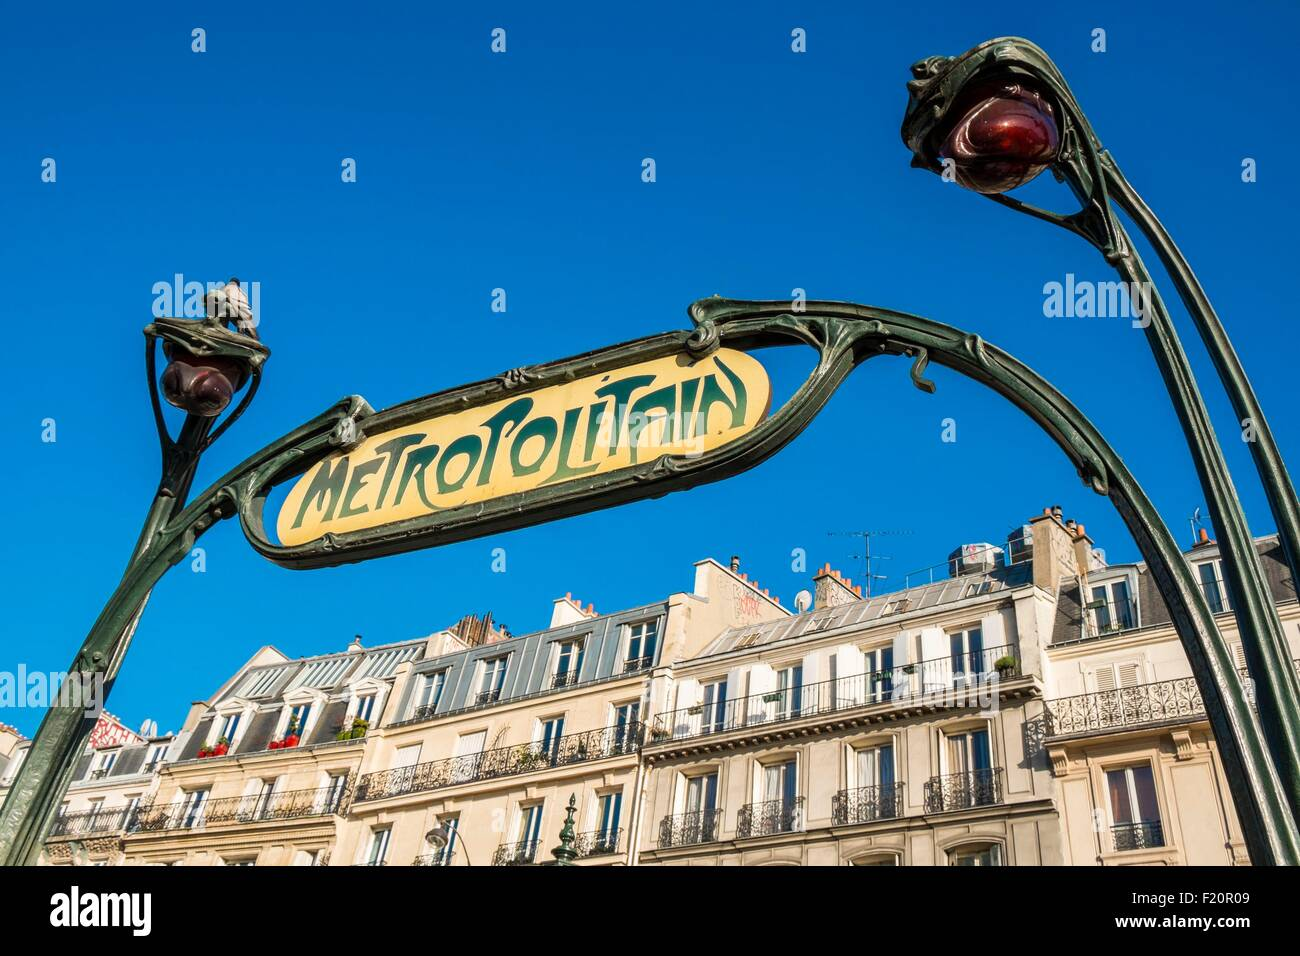 Place Clichy Stock Photos & Place Clichy Stock Images - Alamy